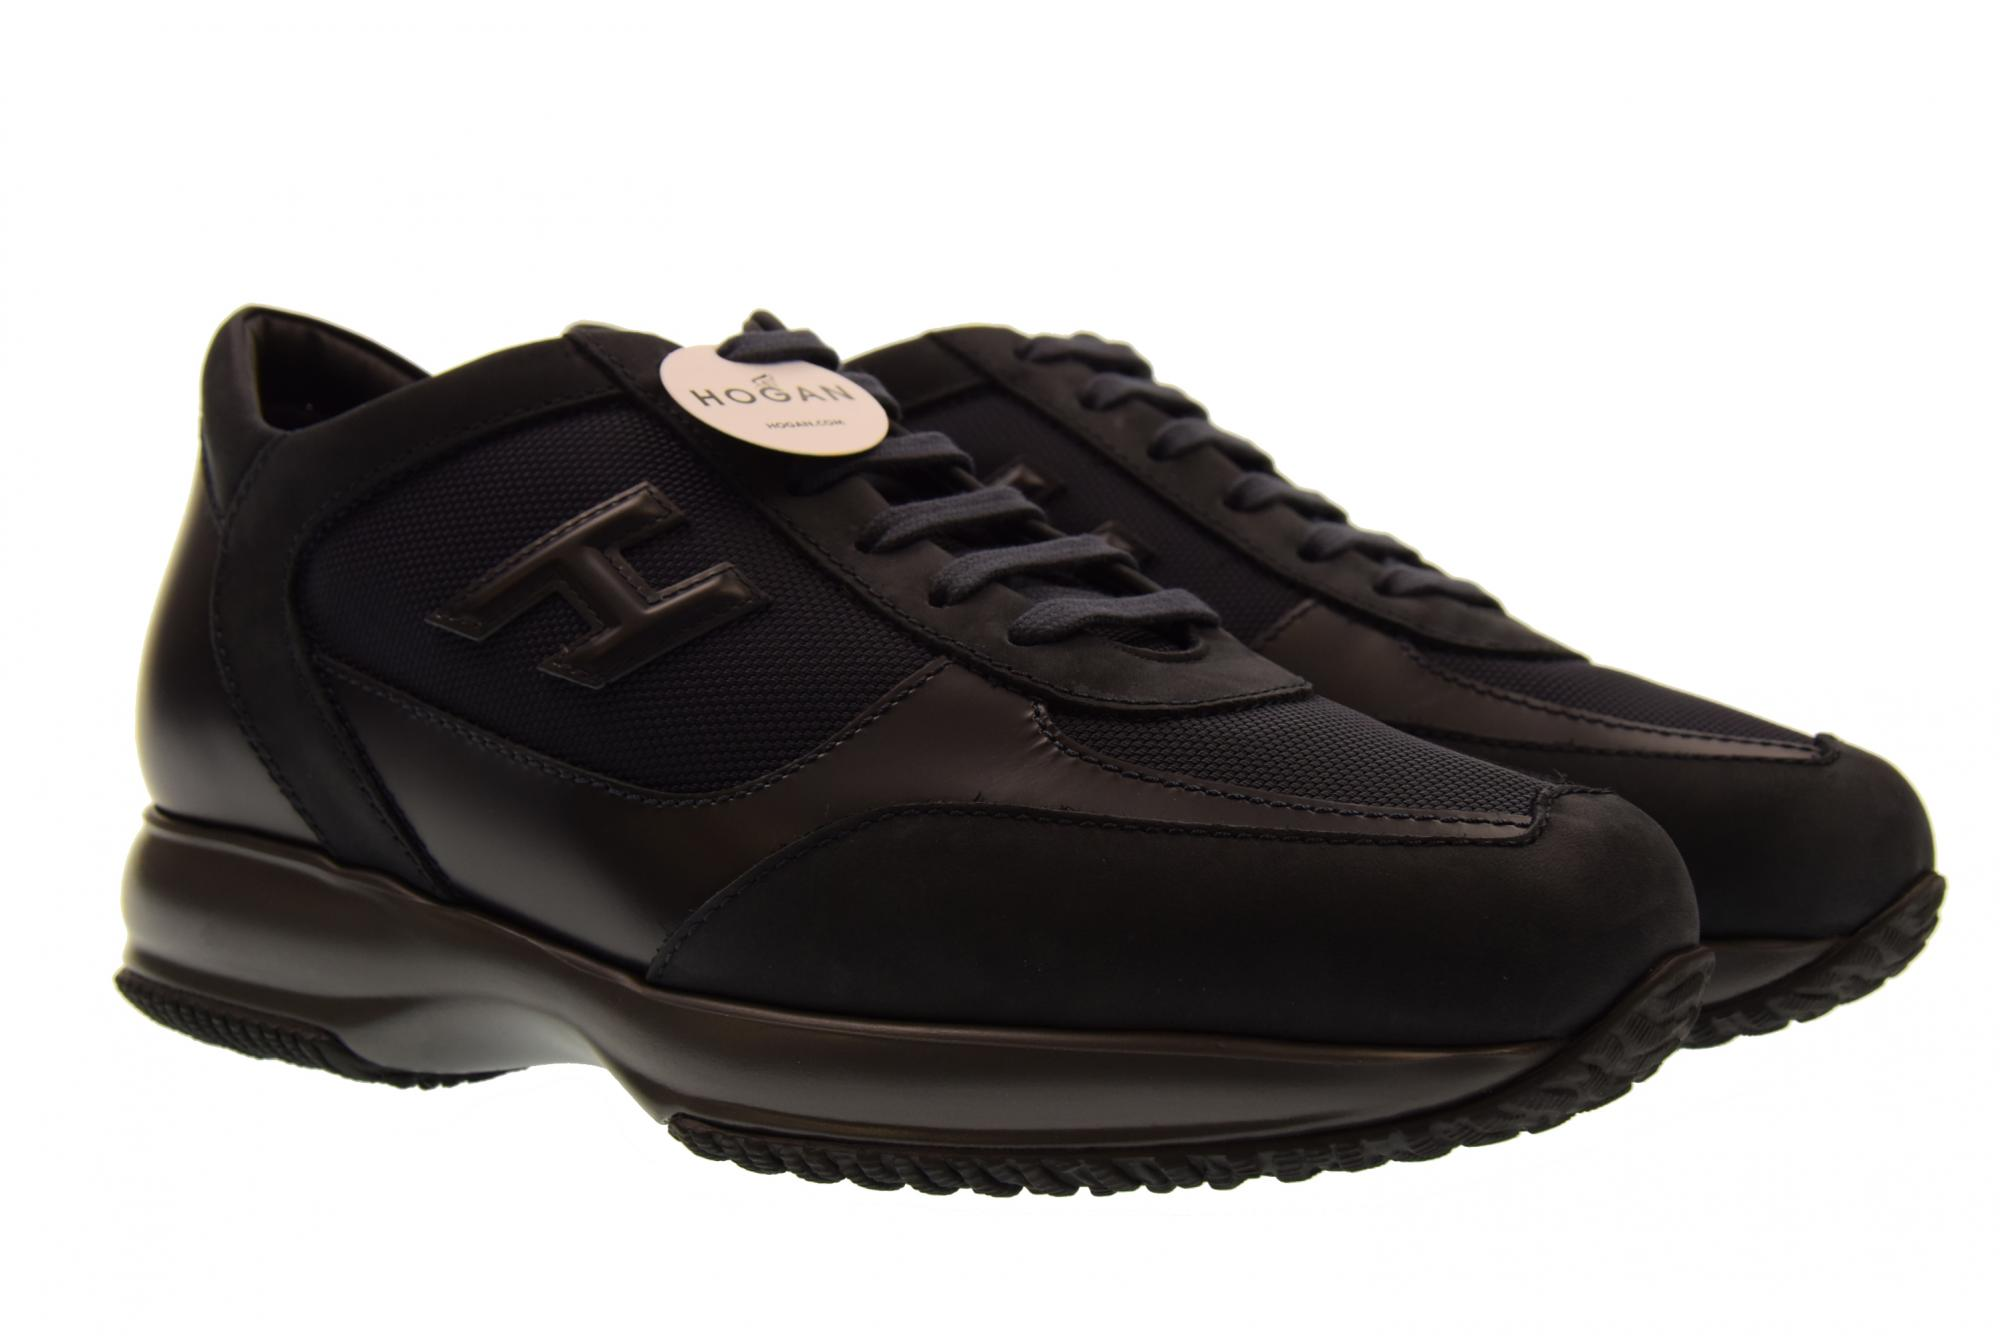 2e83c07362 Hogan A18u shoes men sneakers HXM00N0I980E1I710E NEW INTERACTIVE MOD H 3D